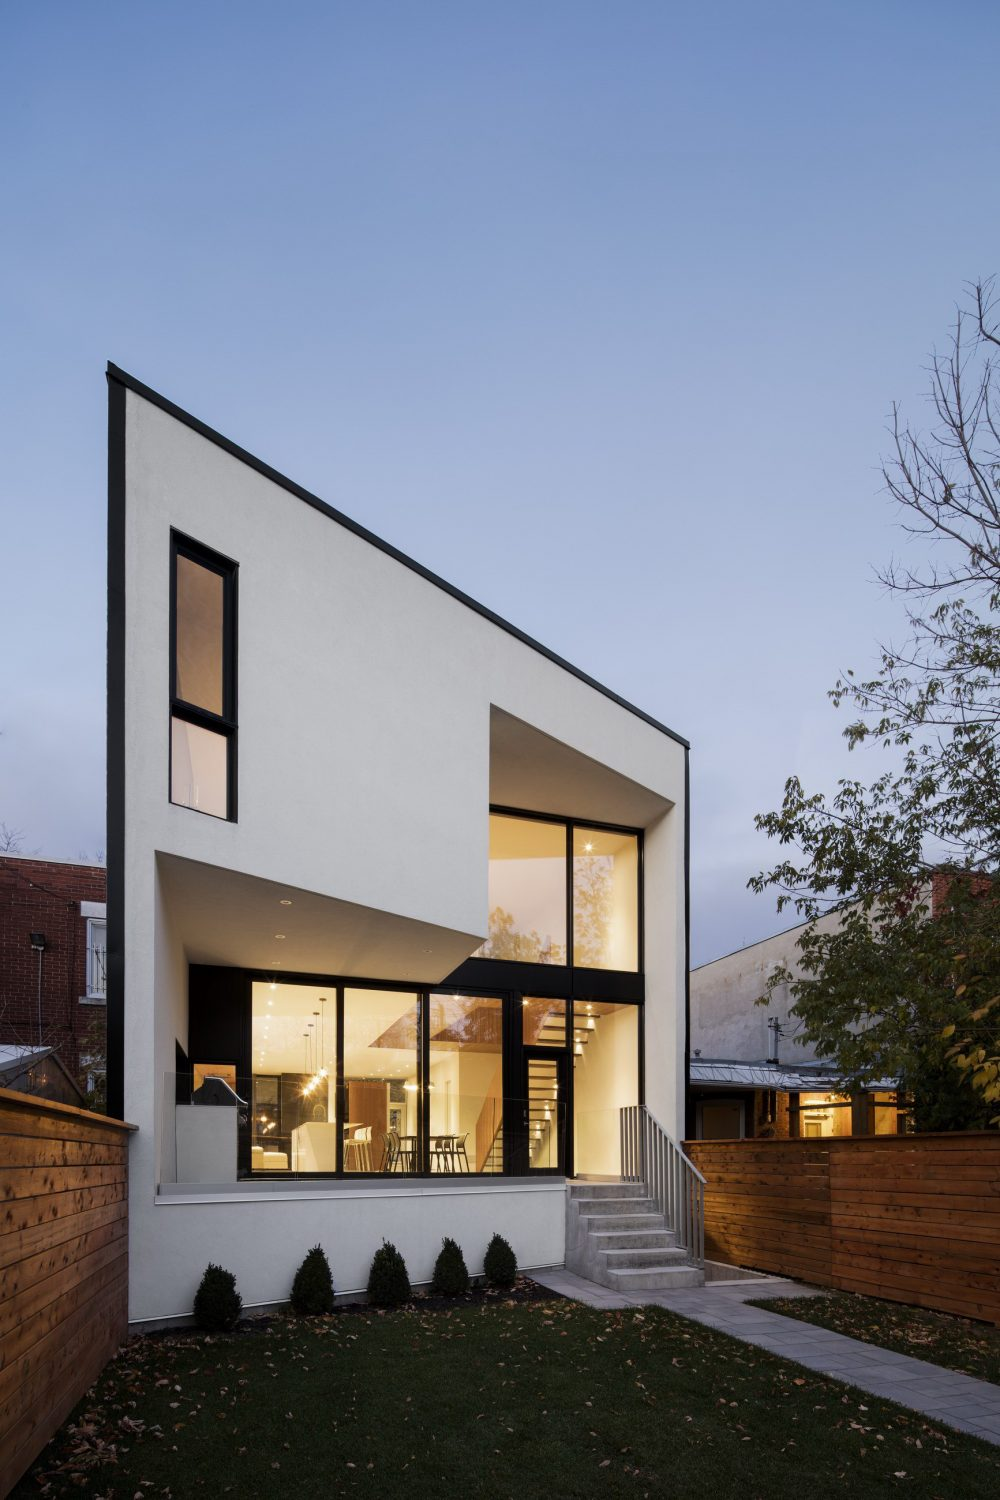 1st Avenue Residence – Terraced House Renovation by Microclimat